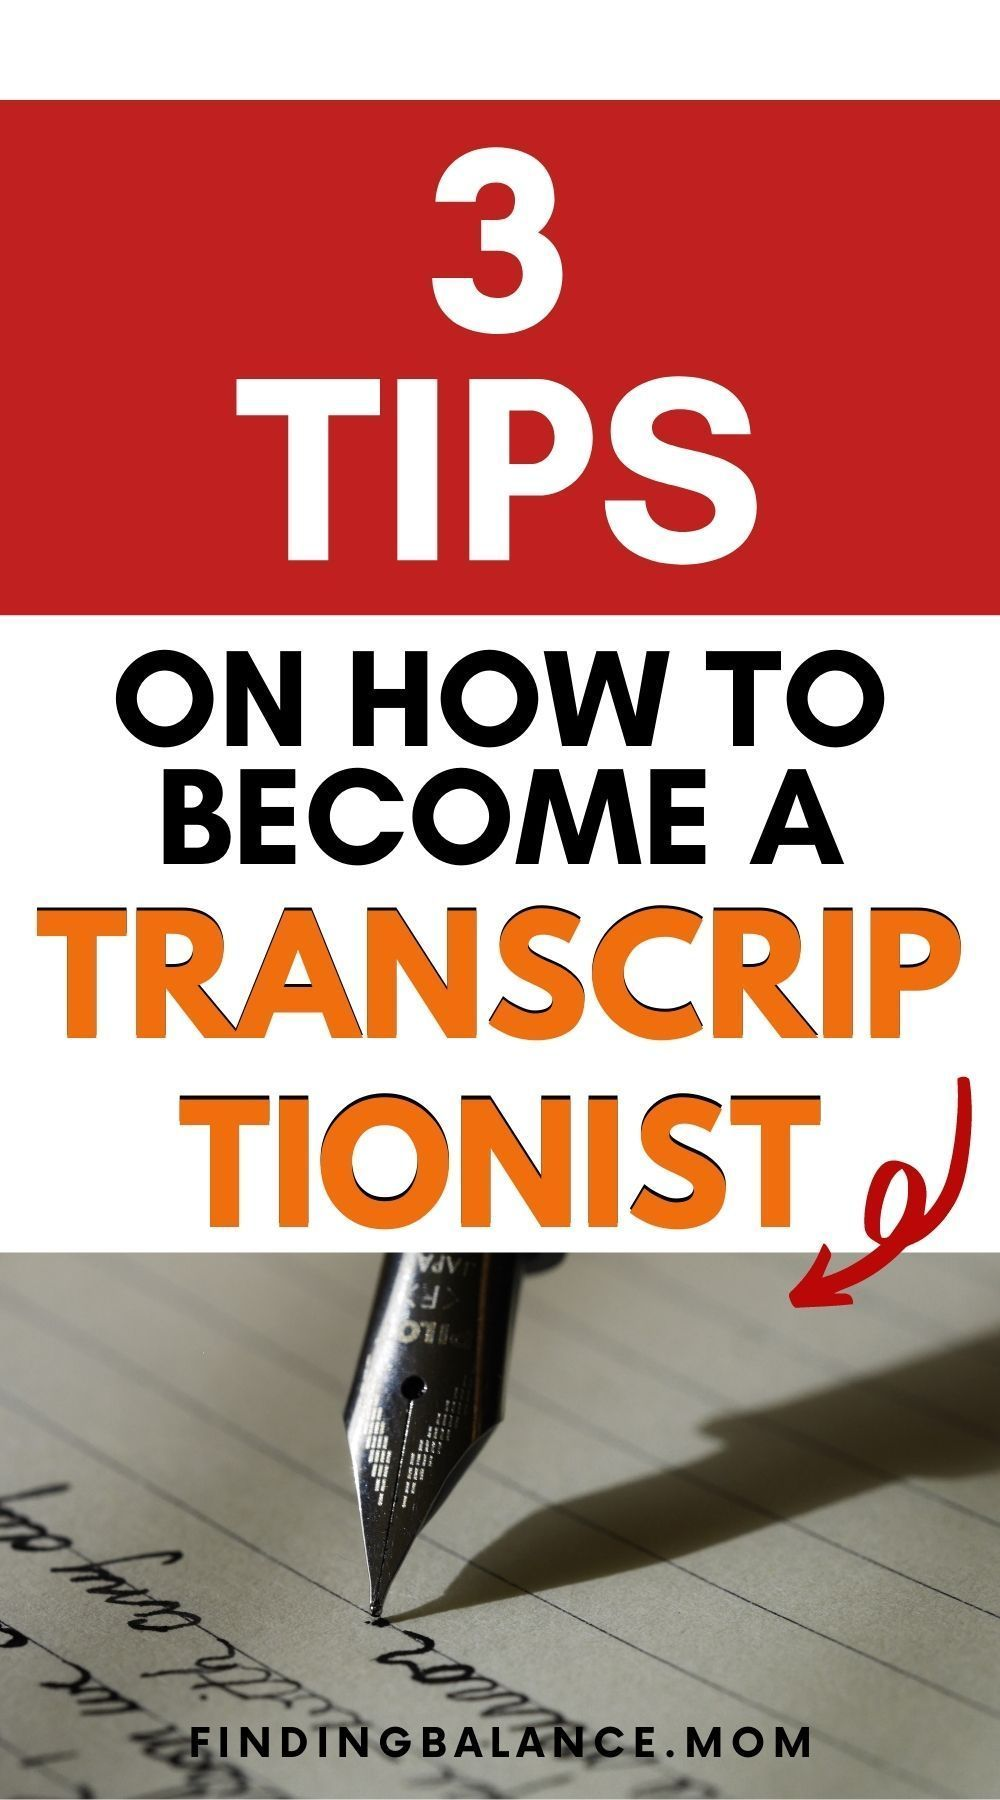 How To Become A Transcriptionist And Make Full Time Income From Home In 2021 How To Get Money Transcription Jobs For Beginners Transcription Jobs From Home